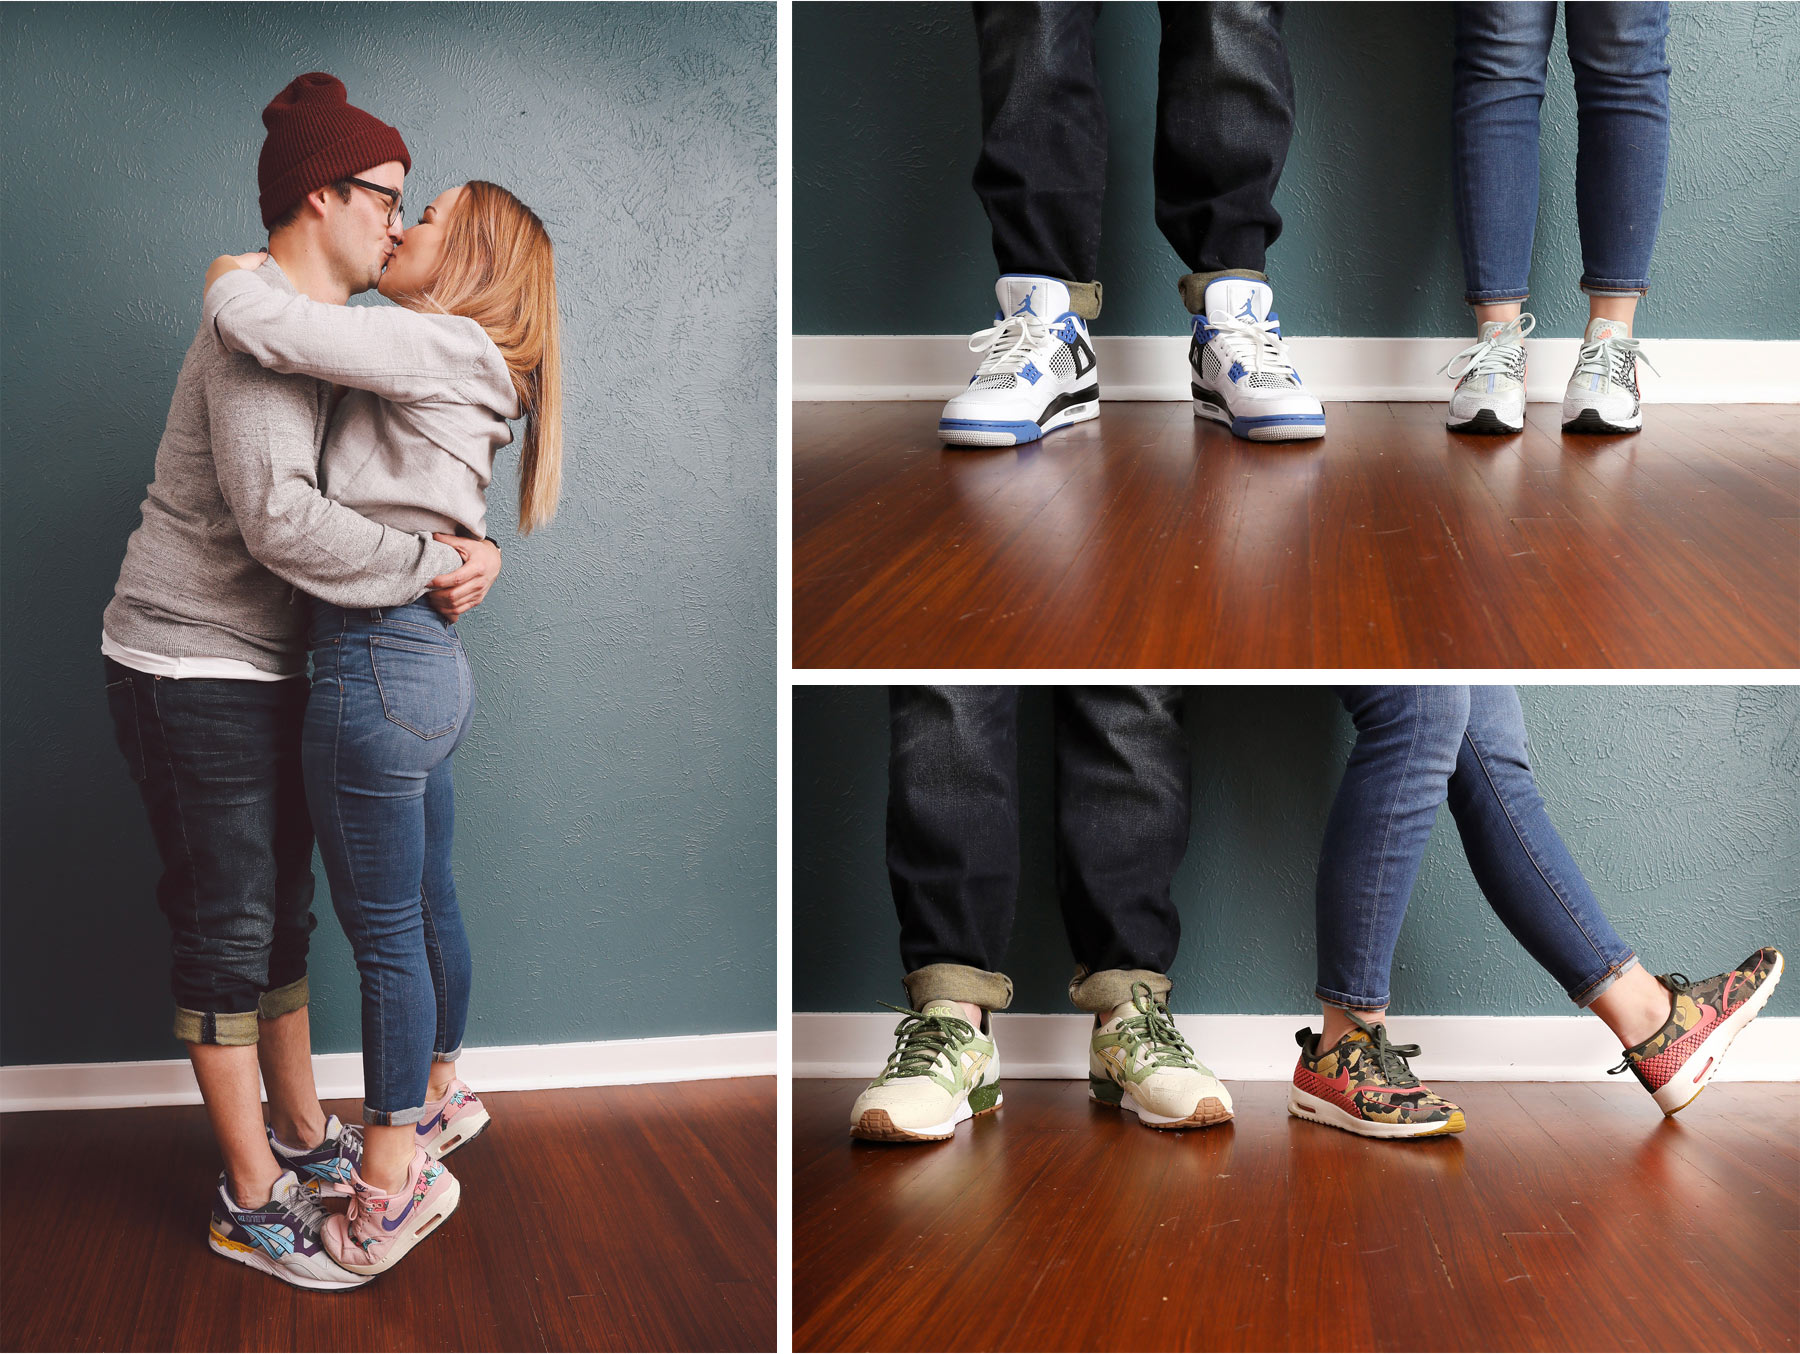 09-Vick-Photography-Fly-to-You-Engagement-Session-Denver-Colorado-Home-Shoe-Collection-Danielle-and-Tom.jpg